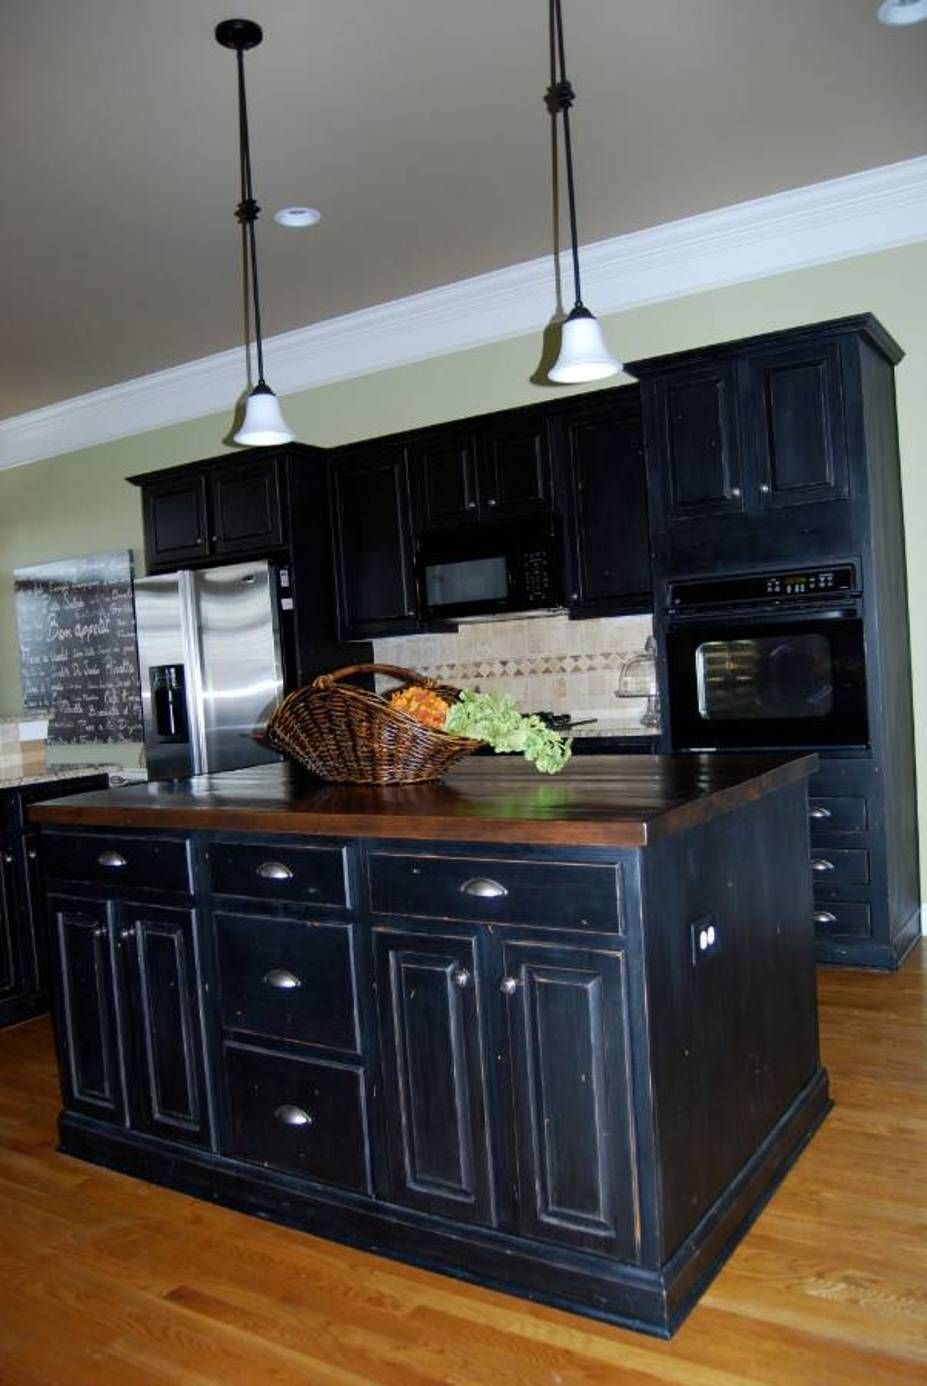 Furniture Suave Distressed Black Kitchen Cabinets Distressed Black Kitchen Cabinet Distressed Kitchen Cabinets Redo Kitchen Cabinets Black Kitchen Cabinets